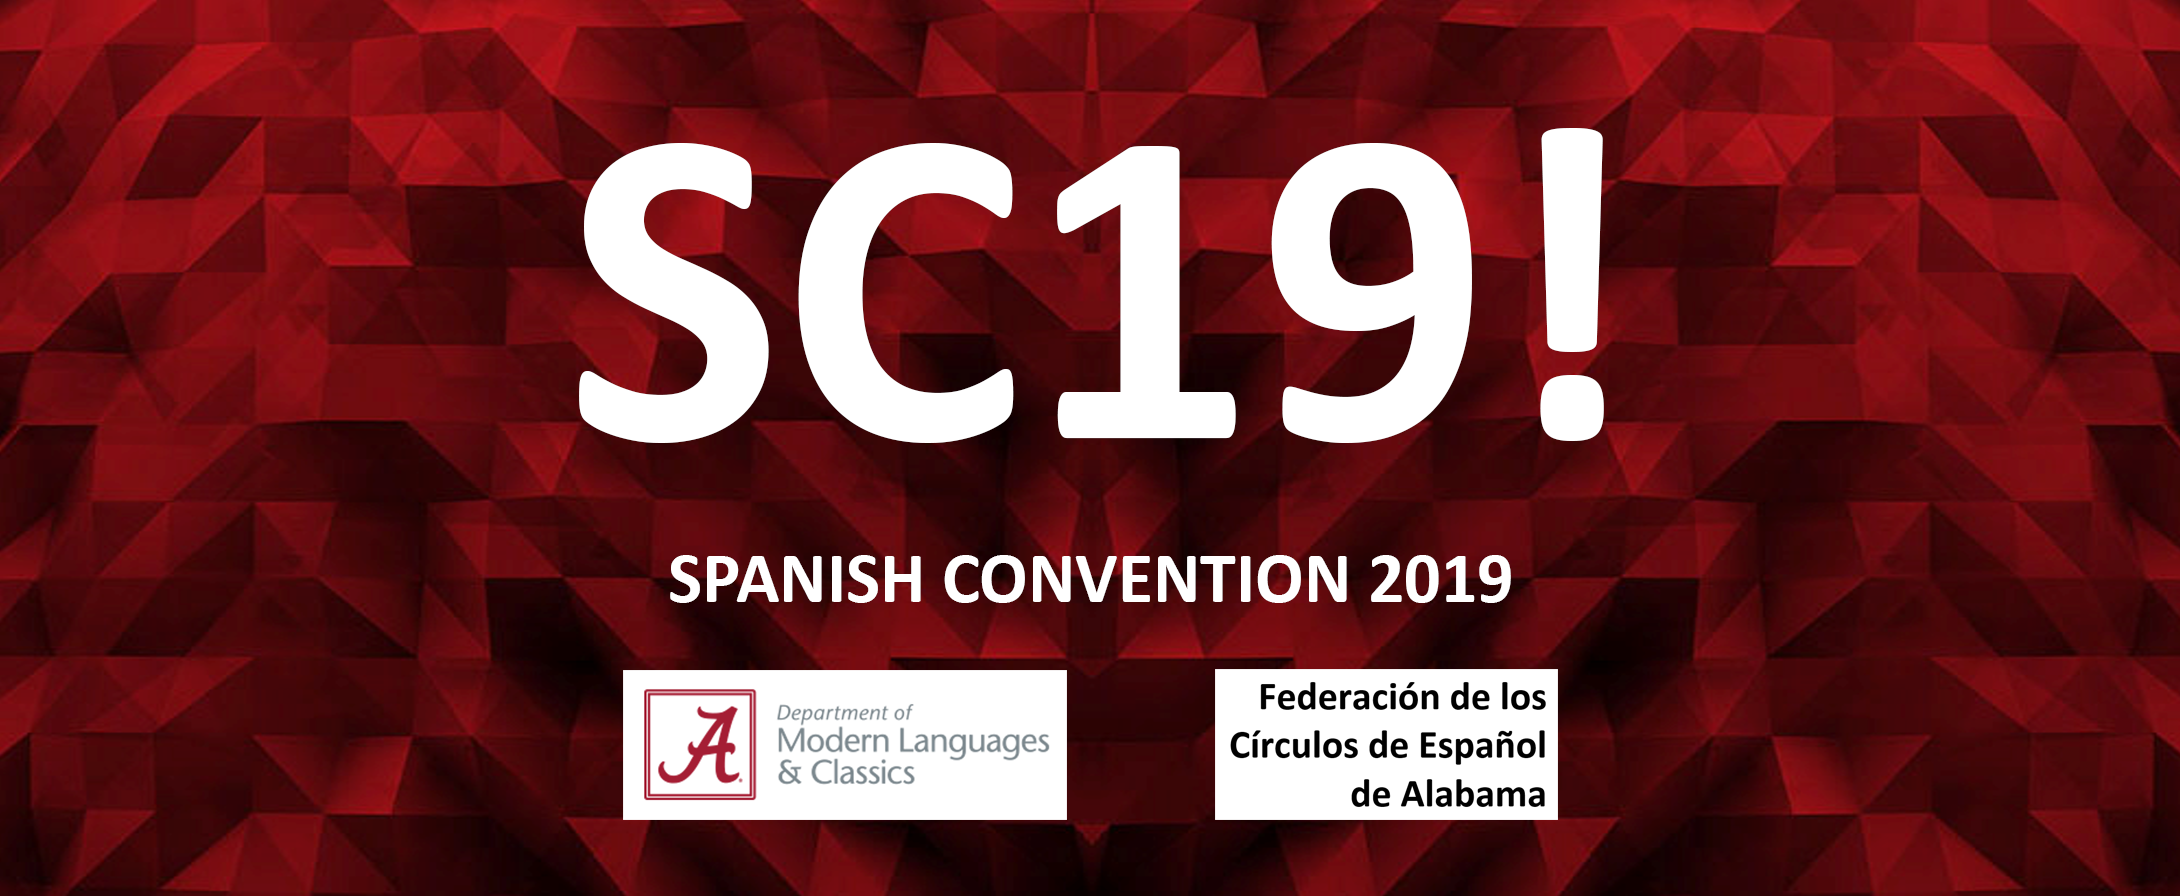 Spanish Convention 2019 logo